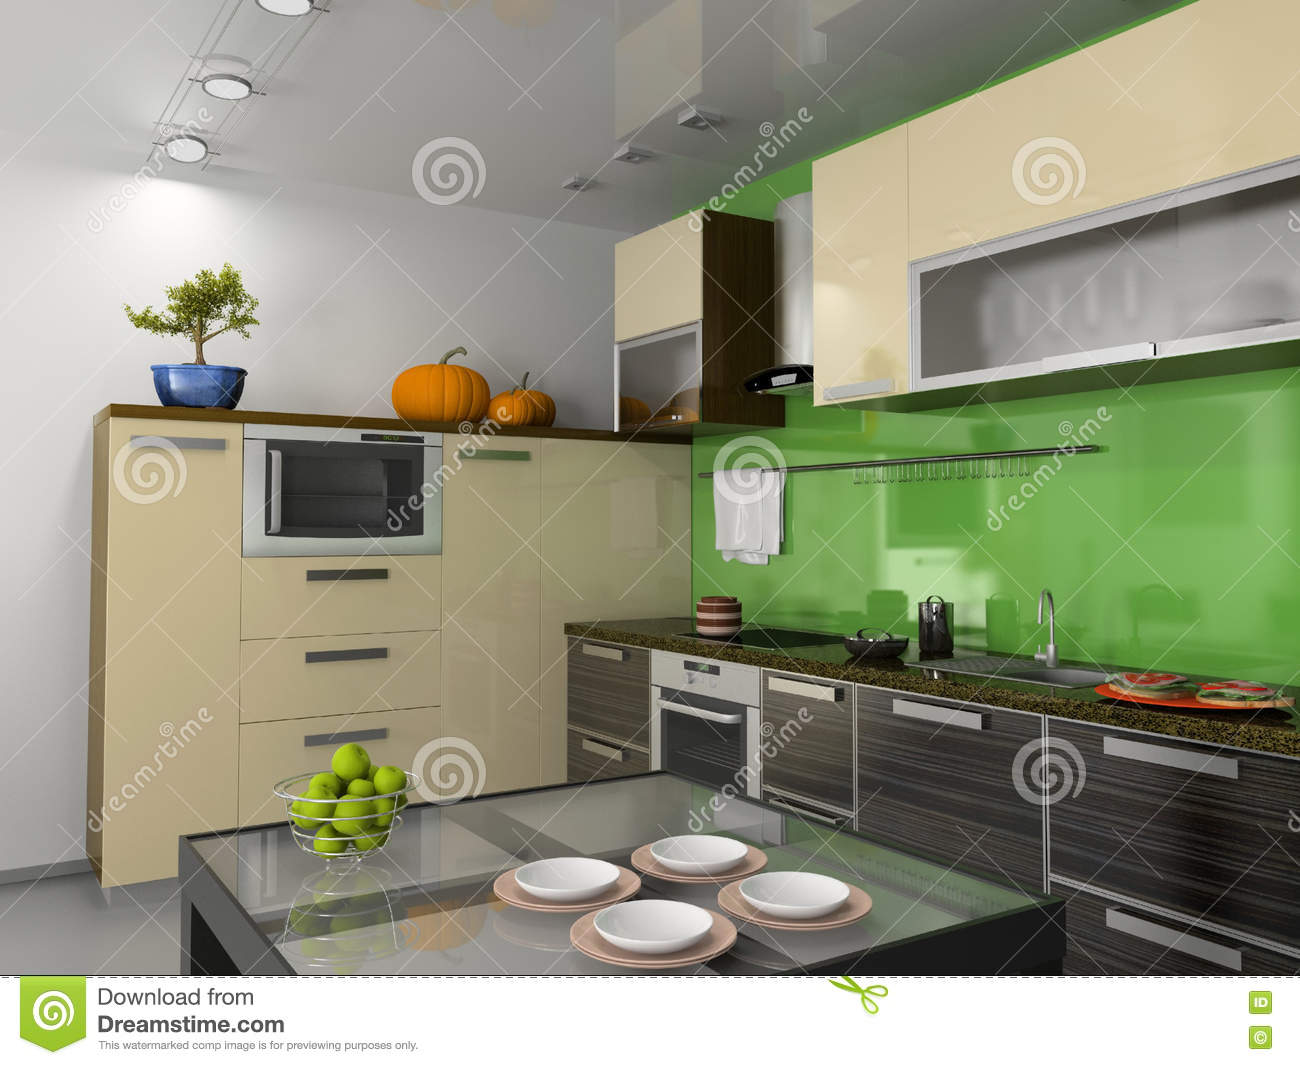 Modern kitchen interior stock photos image 7204943 - Kitchen interior photos ...